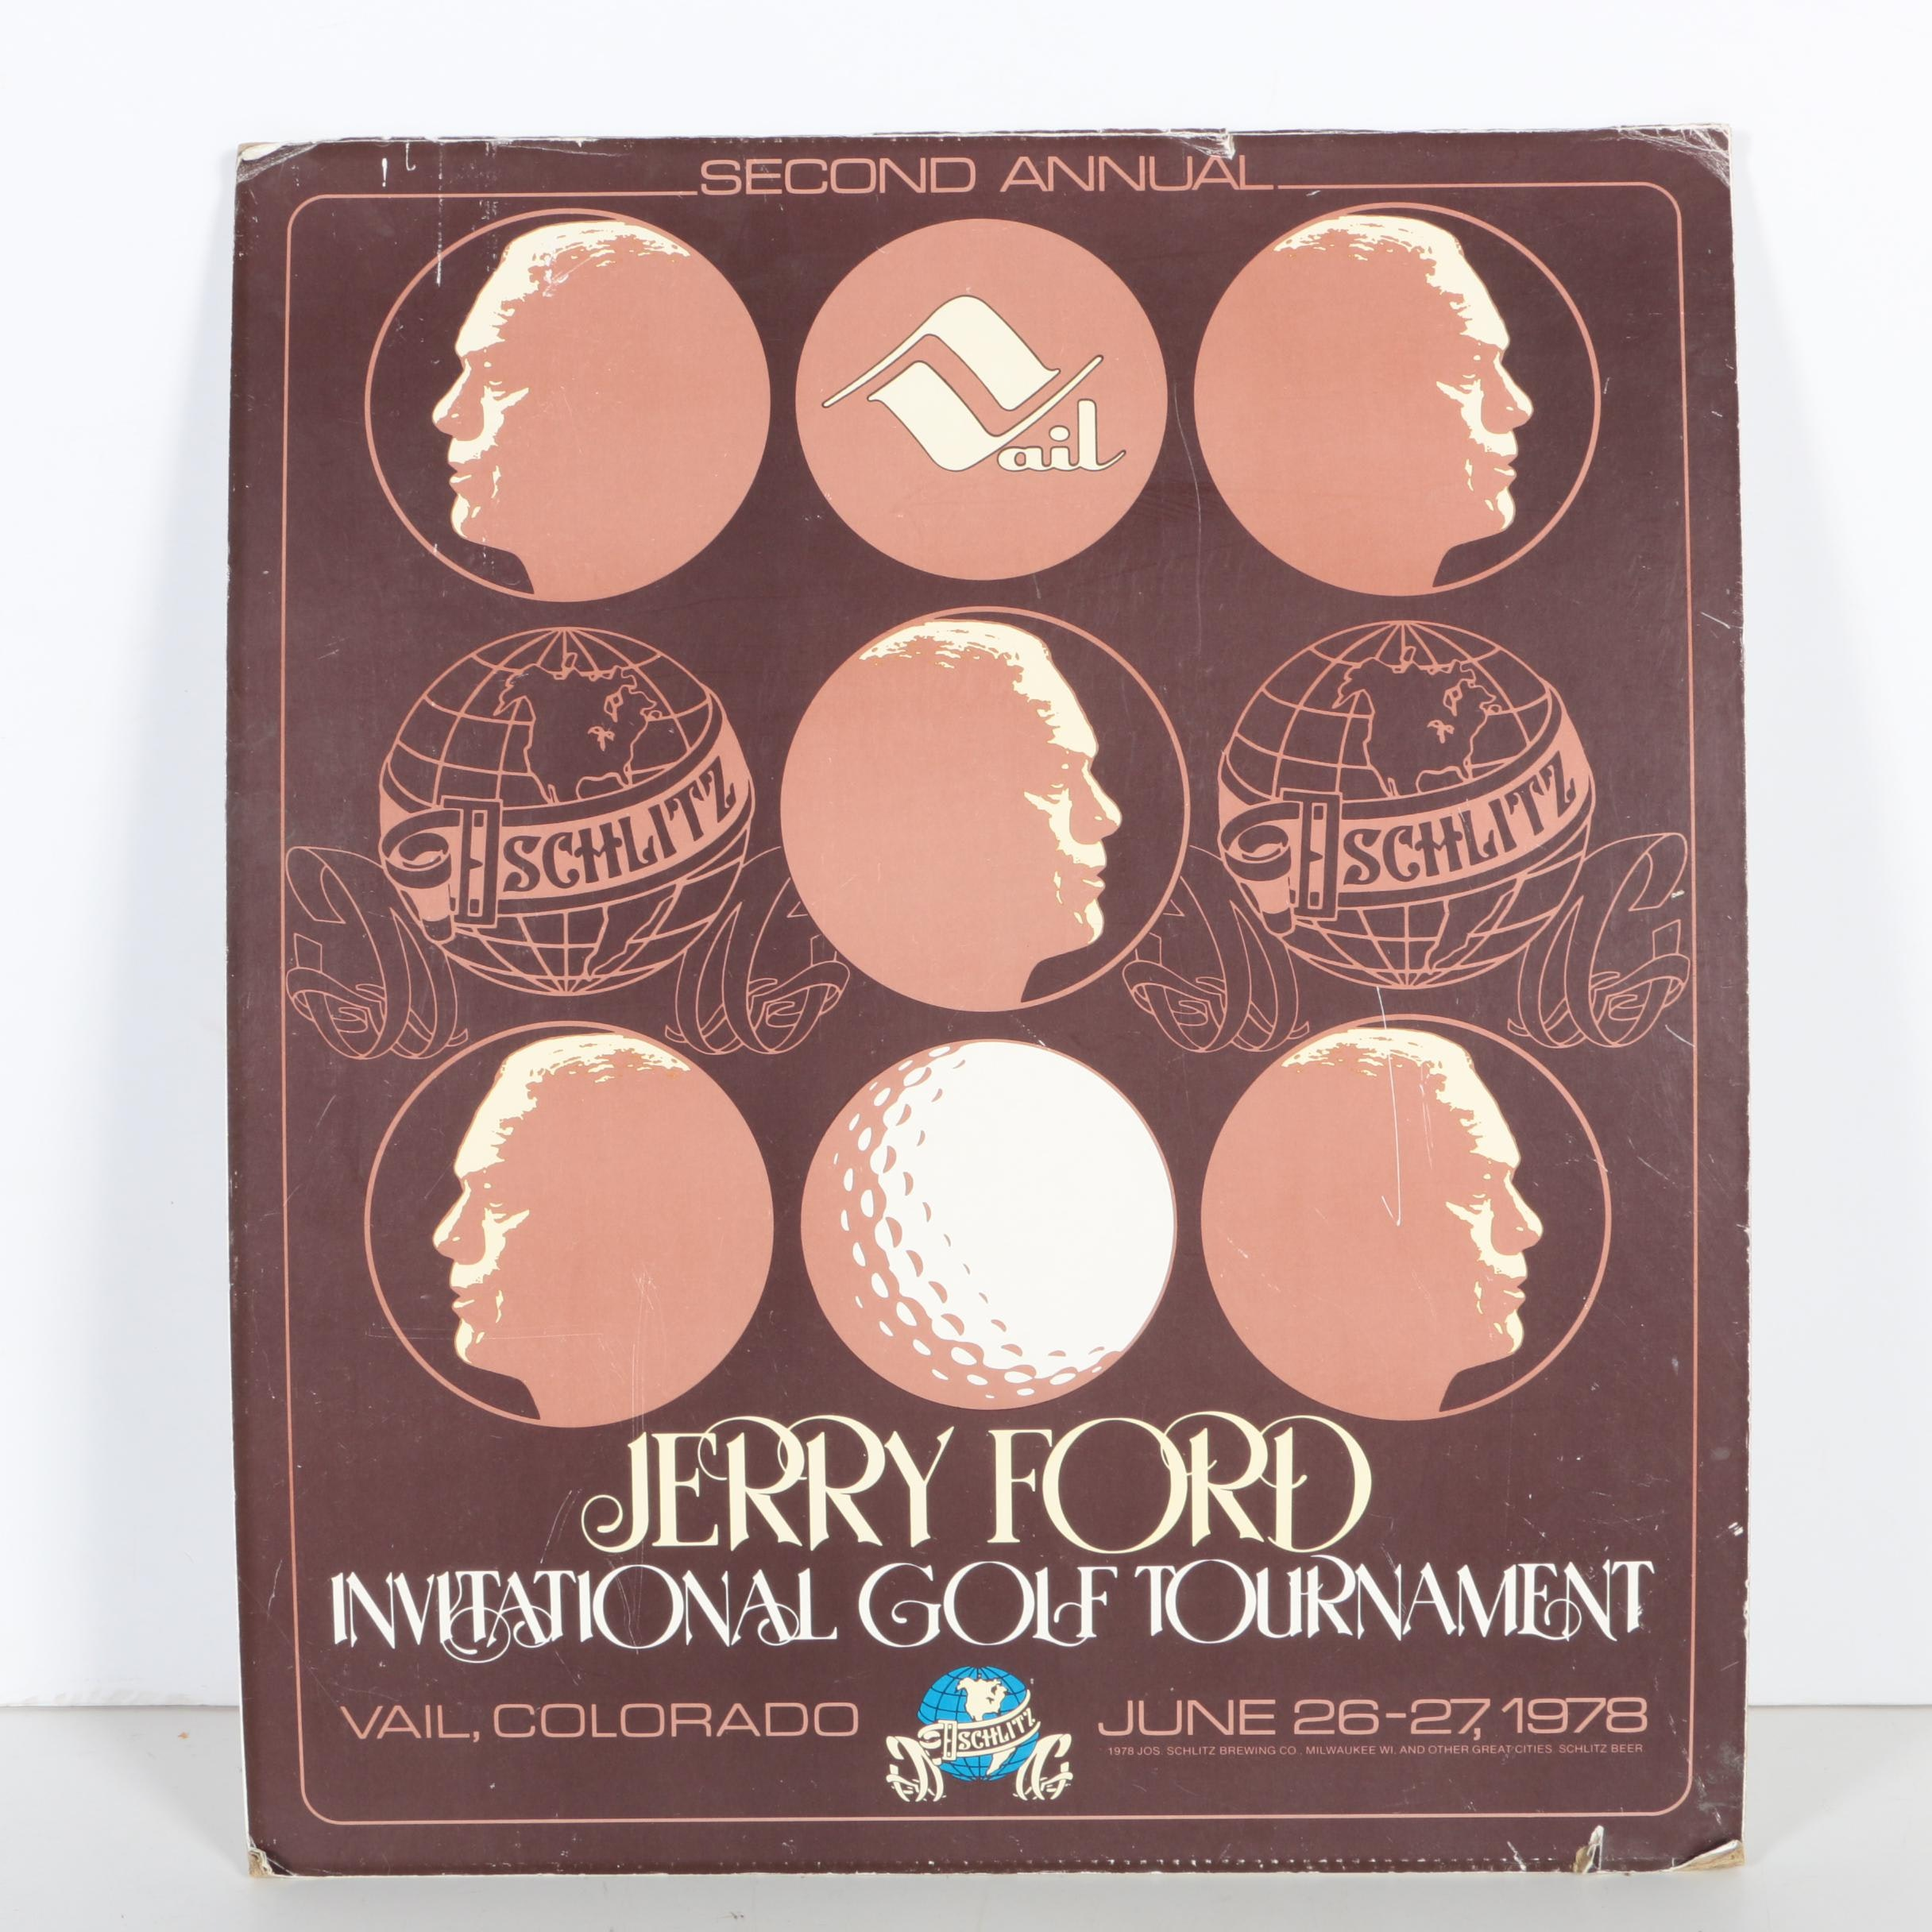 1978 Jerry Ford Invitational Golf Tournament Poster